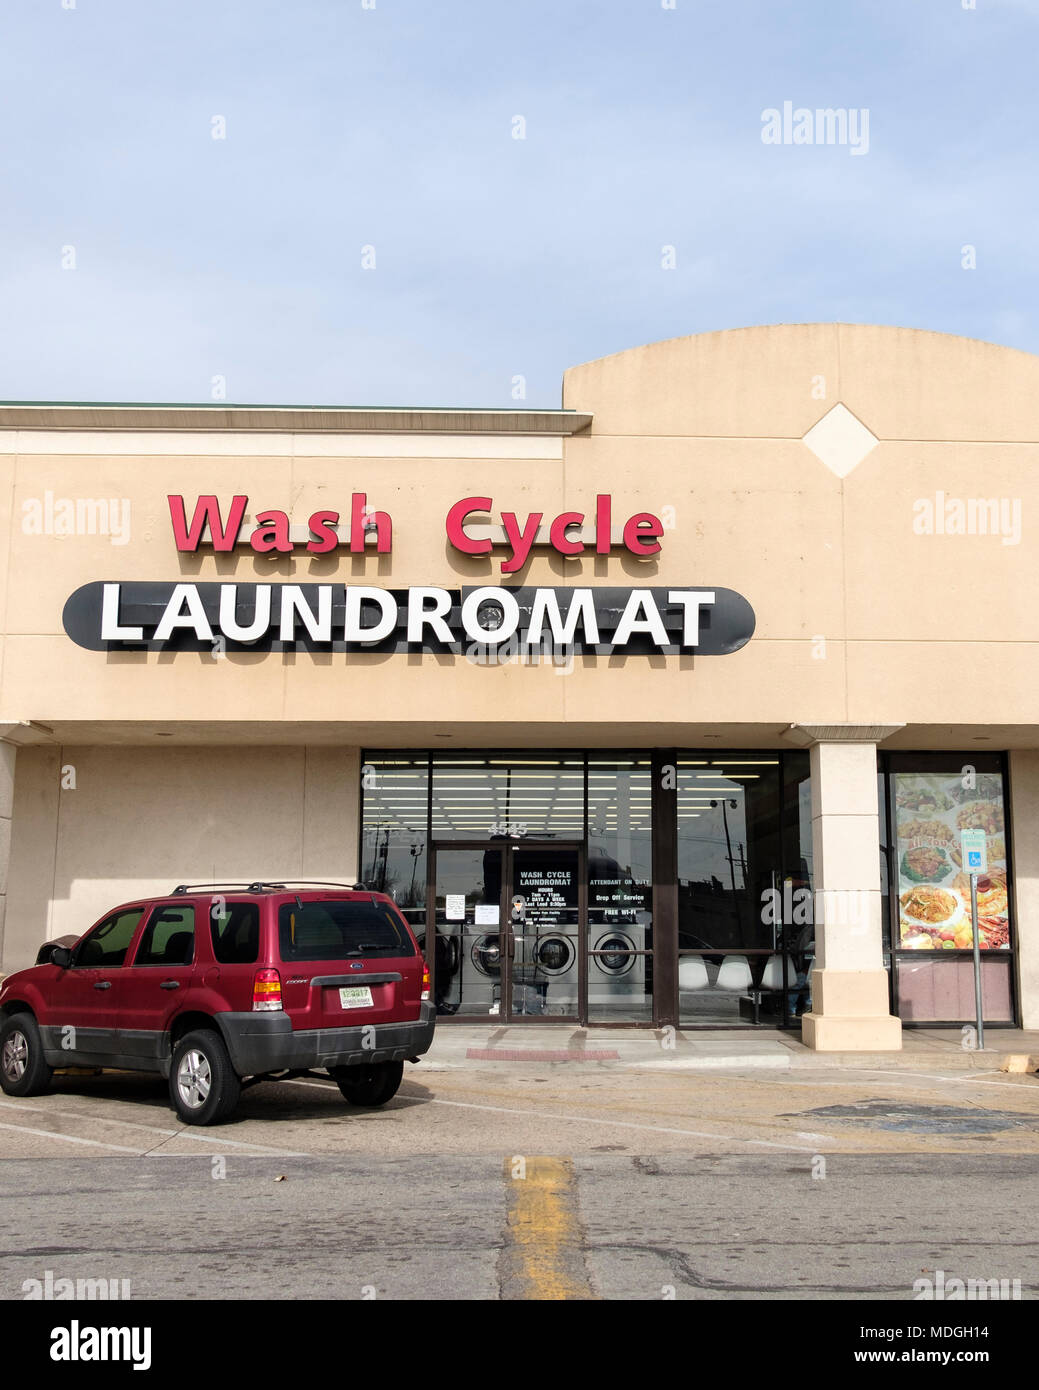 The storefront of wash cycle laundromat a do it yourself laundry in the storefront of wash cycle laundromat a do it yourself laundry in oklahoma city oklahoma usa solutioingenieria Choice Image